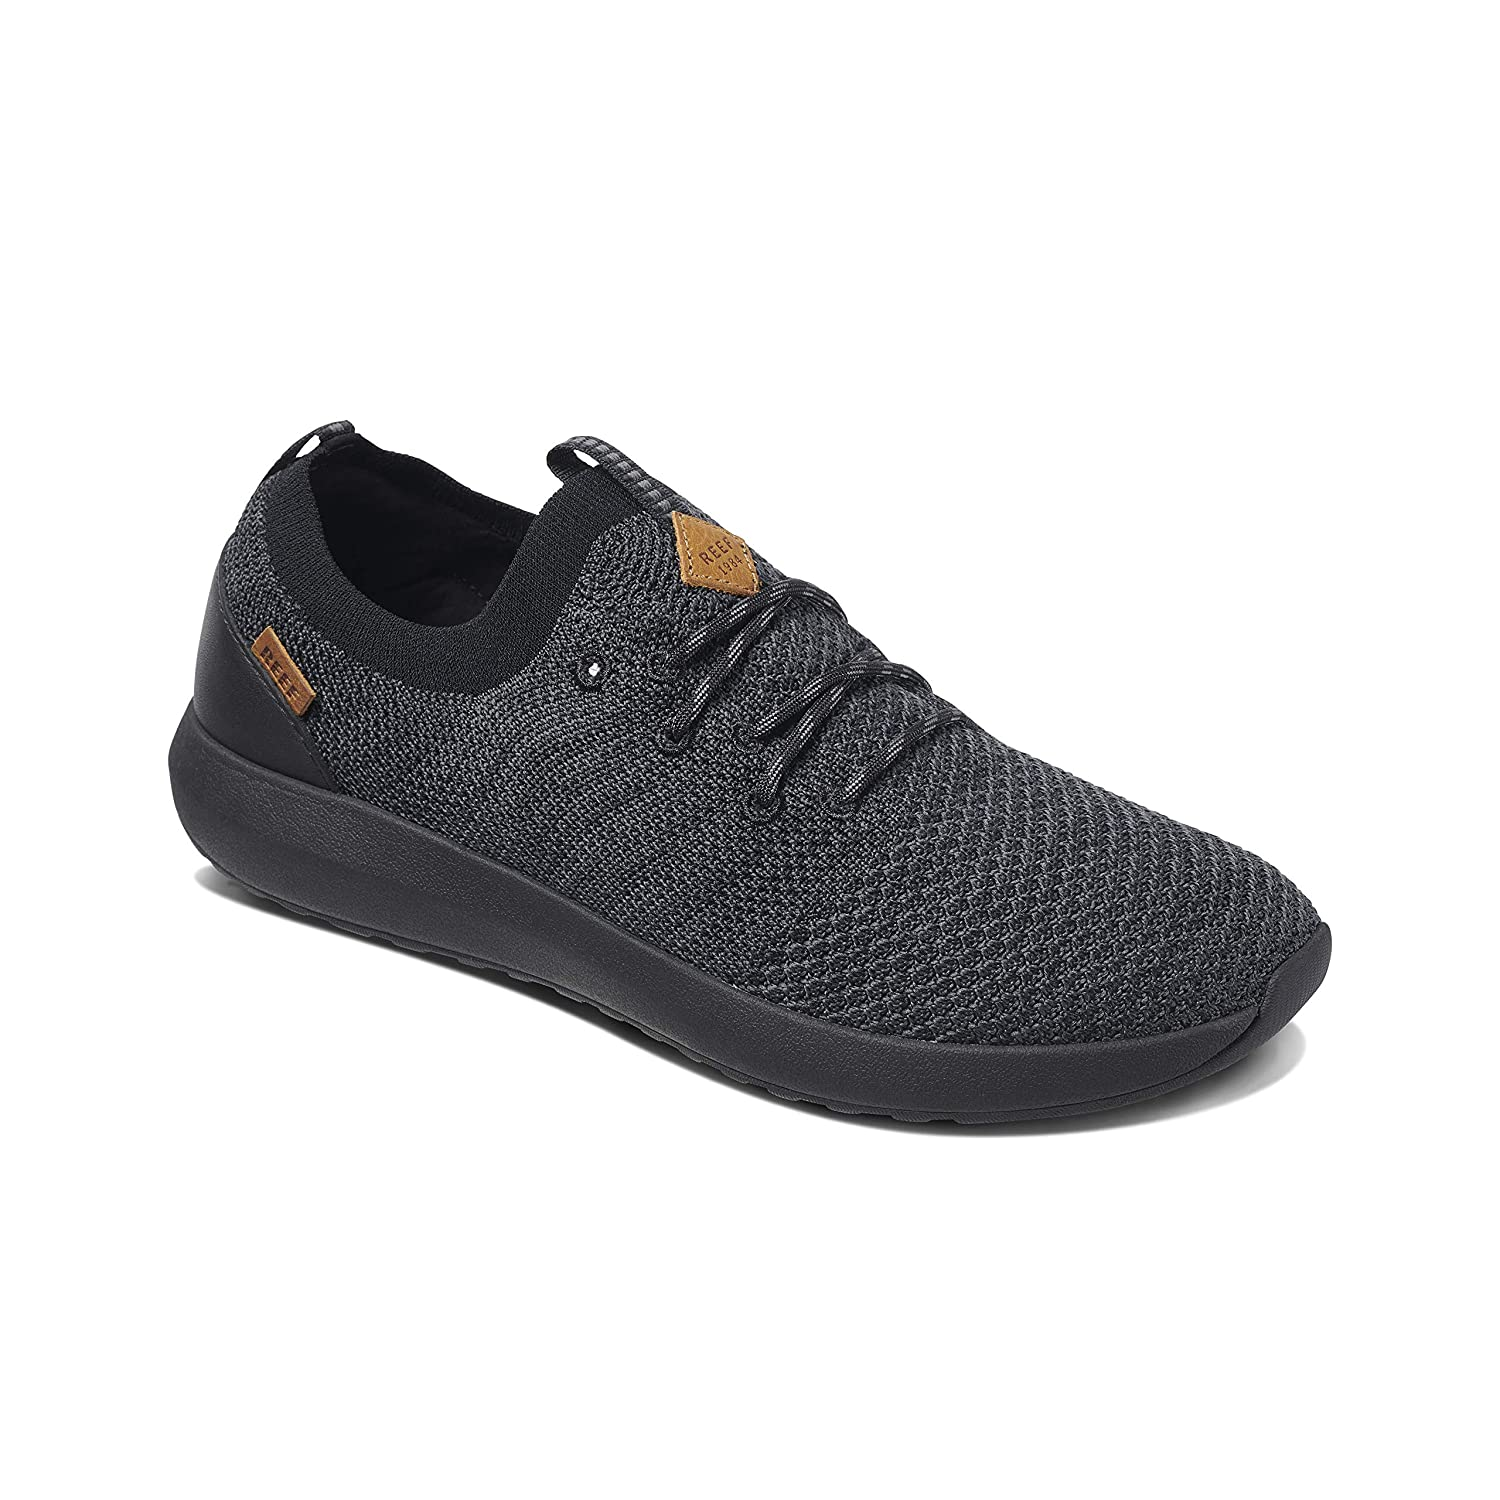 7cf5a8f4e369a REEF Men's Cruiser Knit Skate Shoe